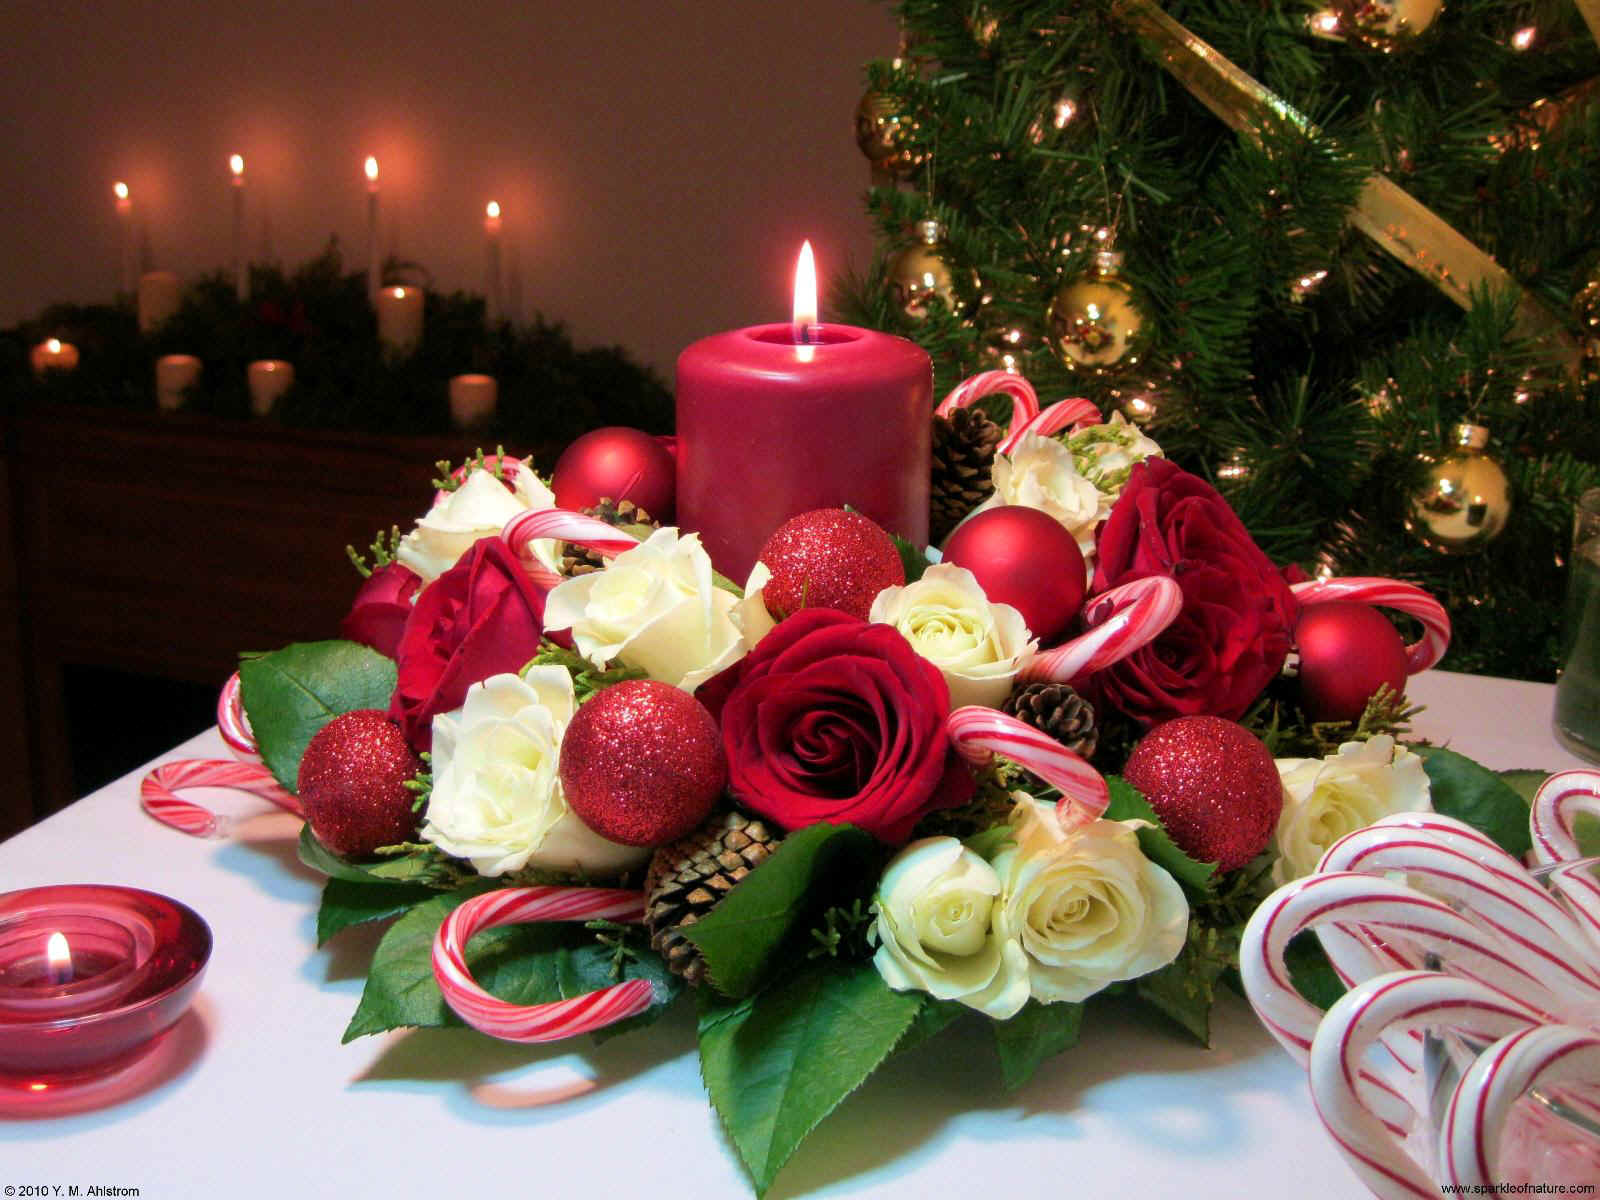 Wallpapers Christmas Candle Wallpapers   Download Christmas Candle 1600x1200